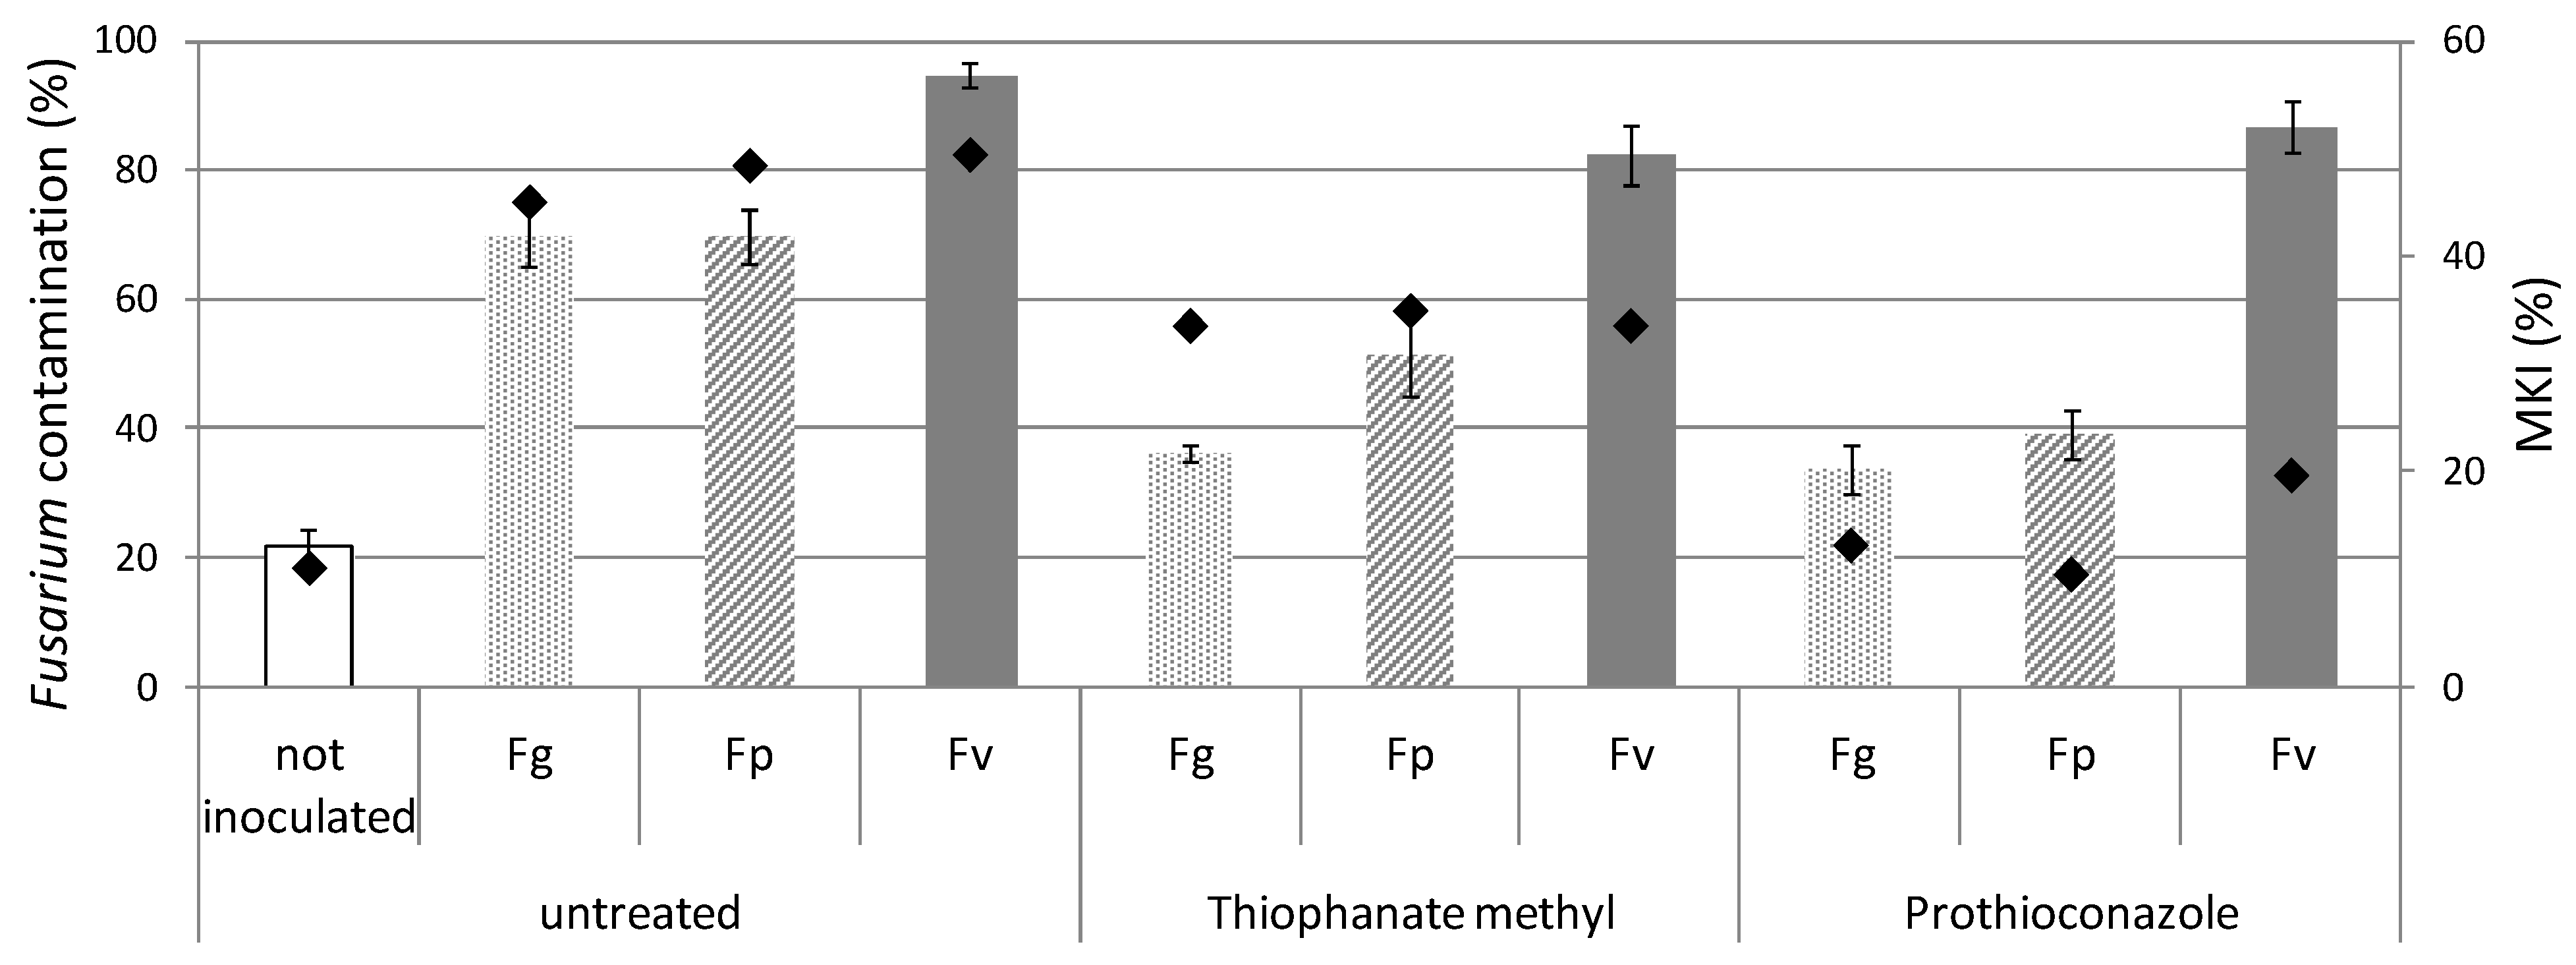 Toxins | Free Full-Text | In Vitro and in Field Response of